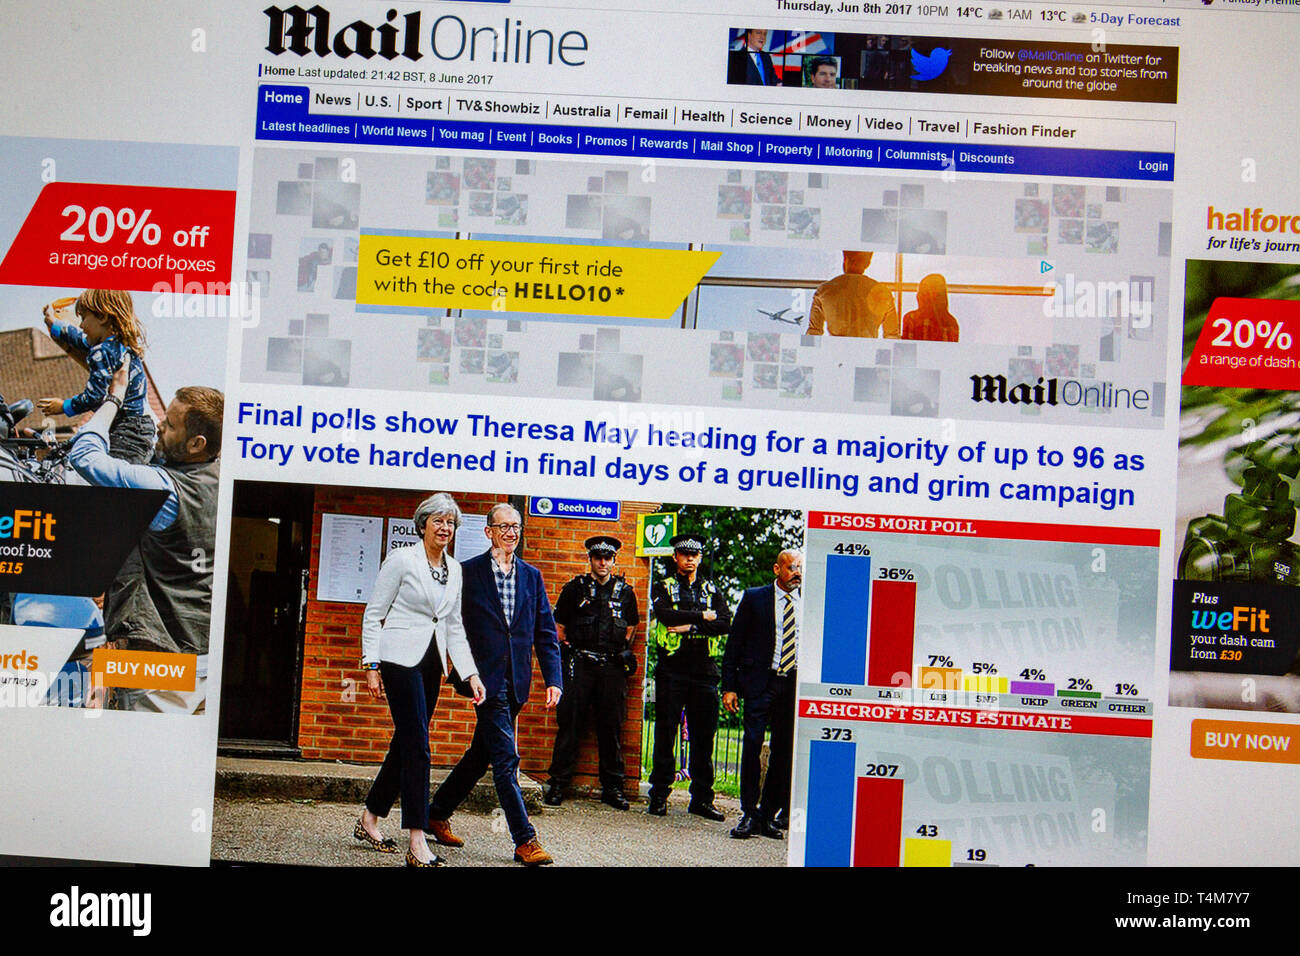 The Daily Mail Online on the evening of the June 2017 General Election in the UK predicting a large Conservative Party majority (incorrectly). - Stock Image